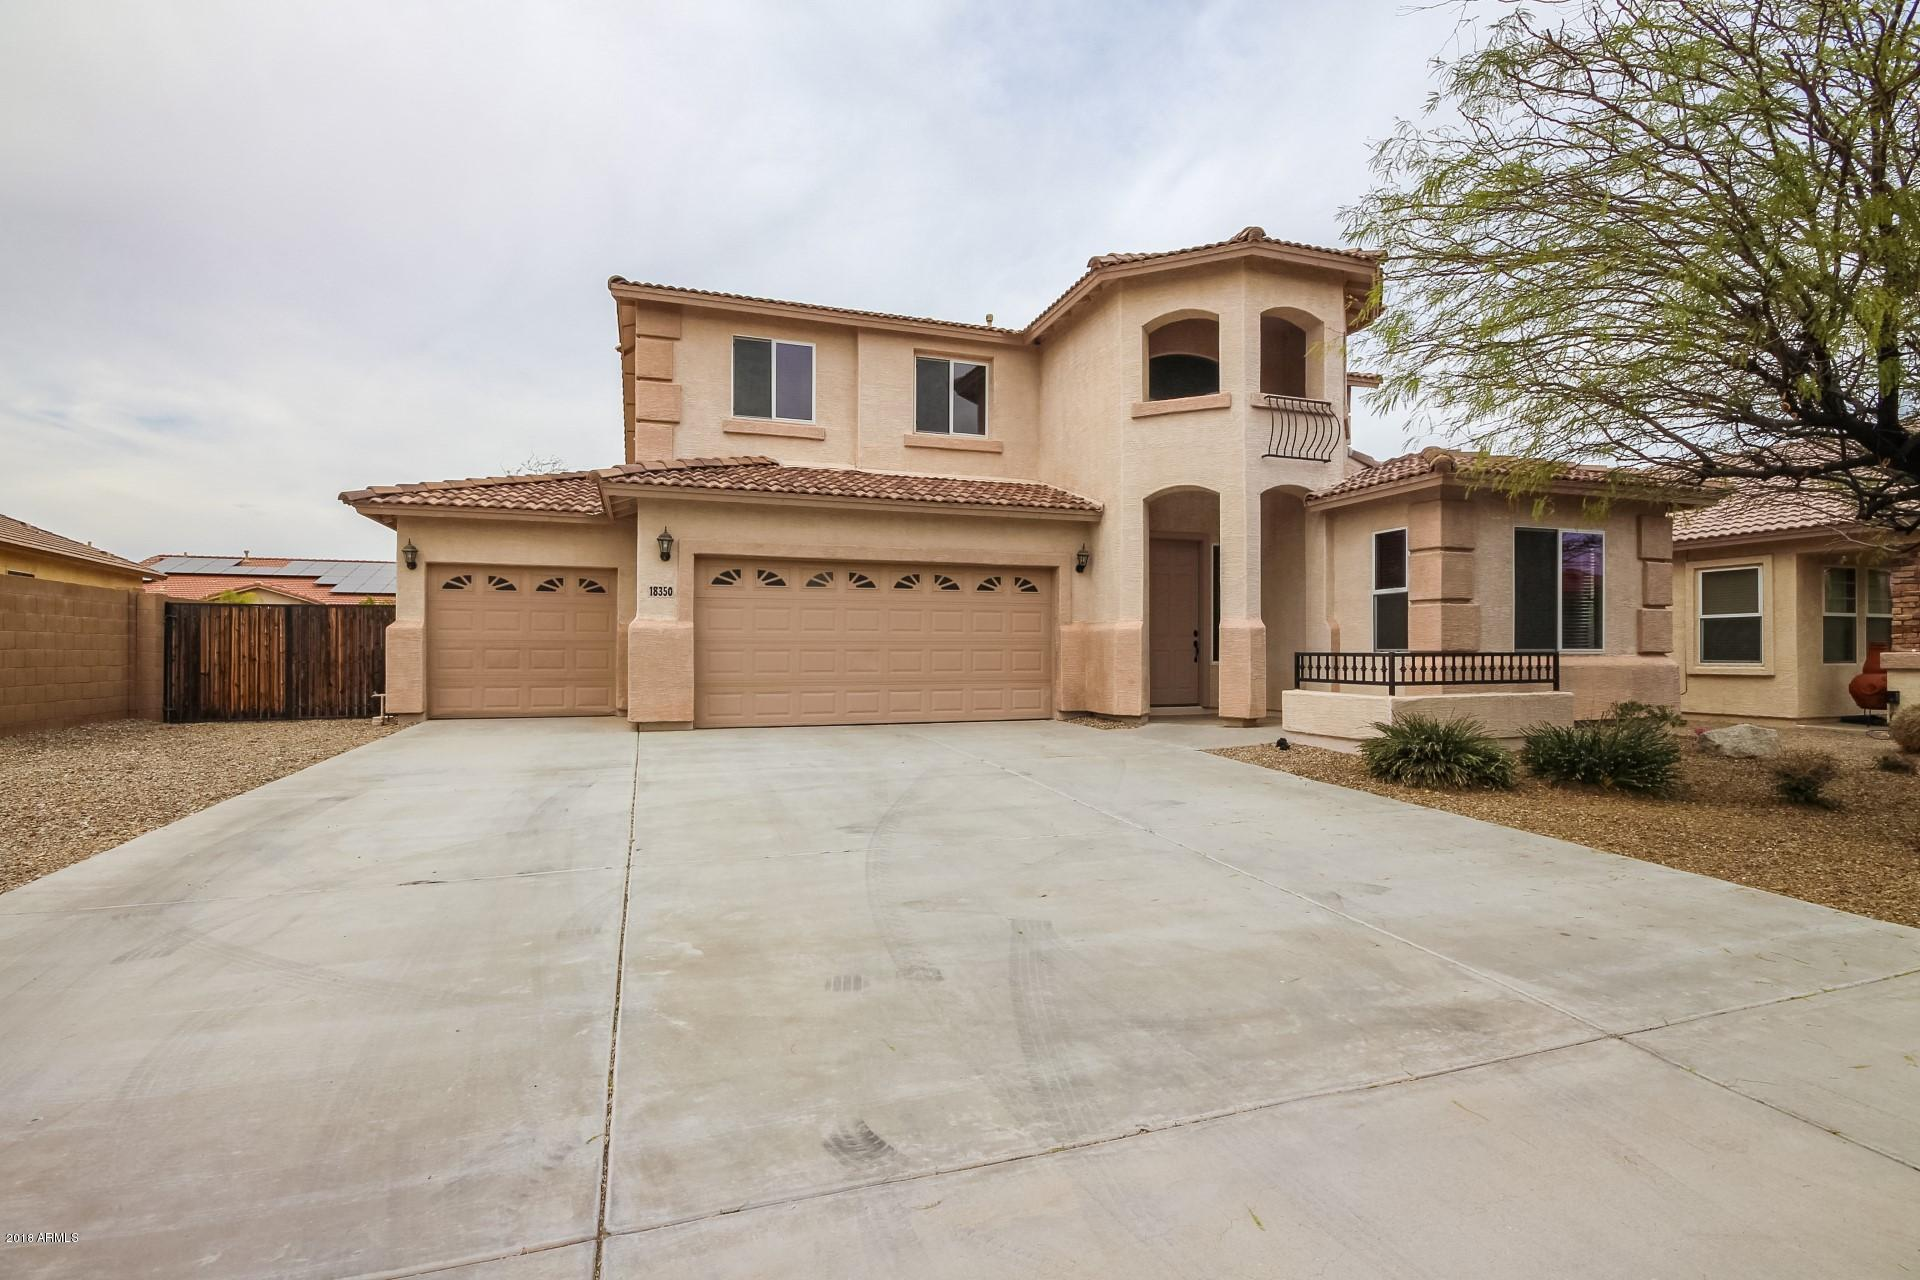 18350 W PORT AU PRINCE LANE, SURPRISE, AZ 85388 - AZwest